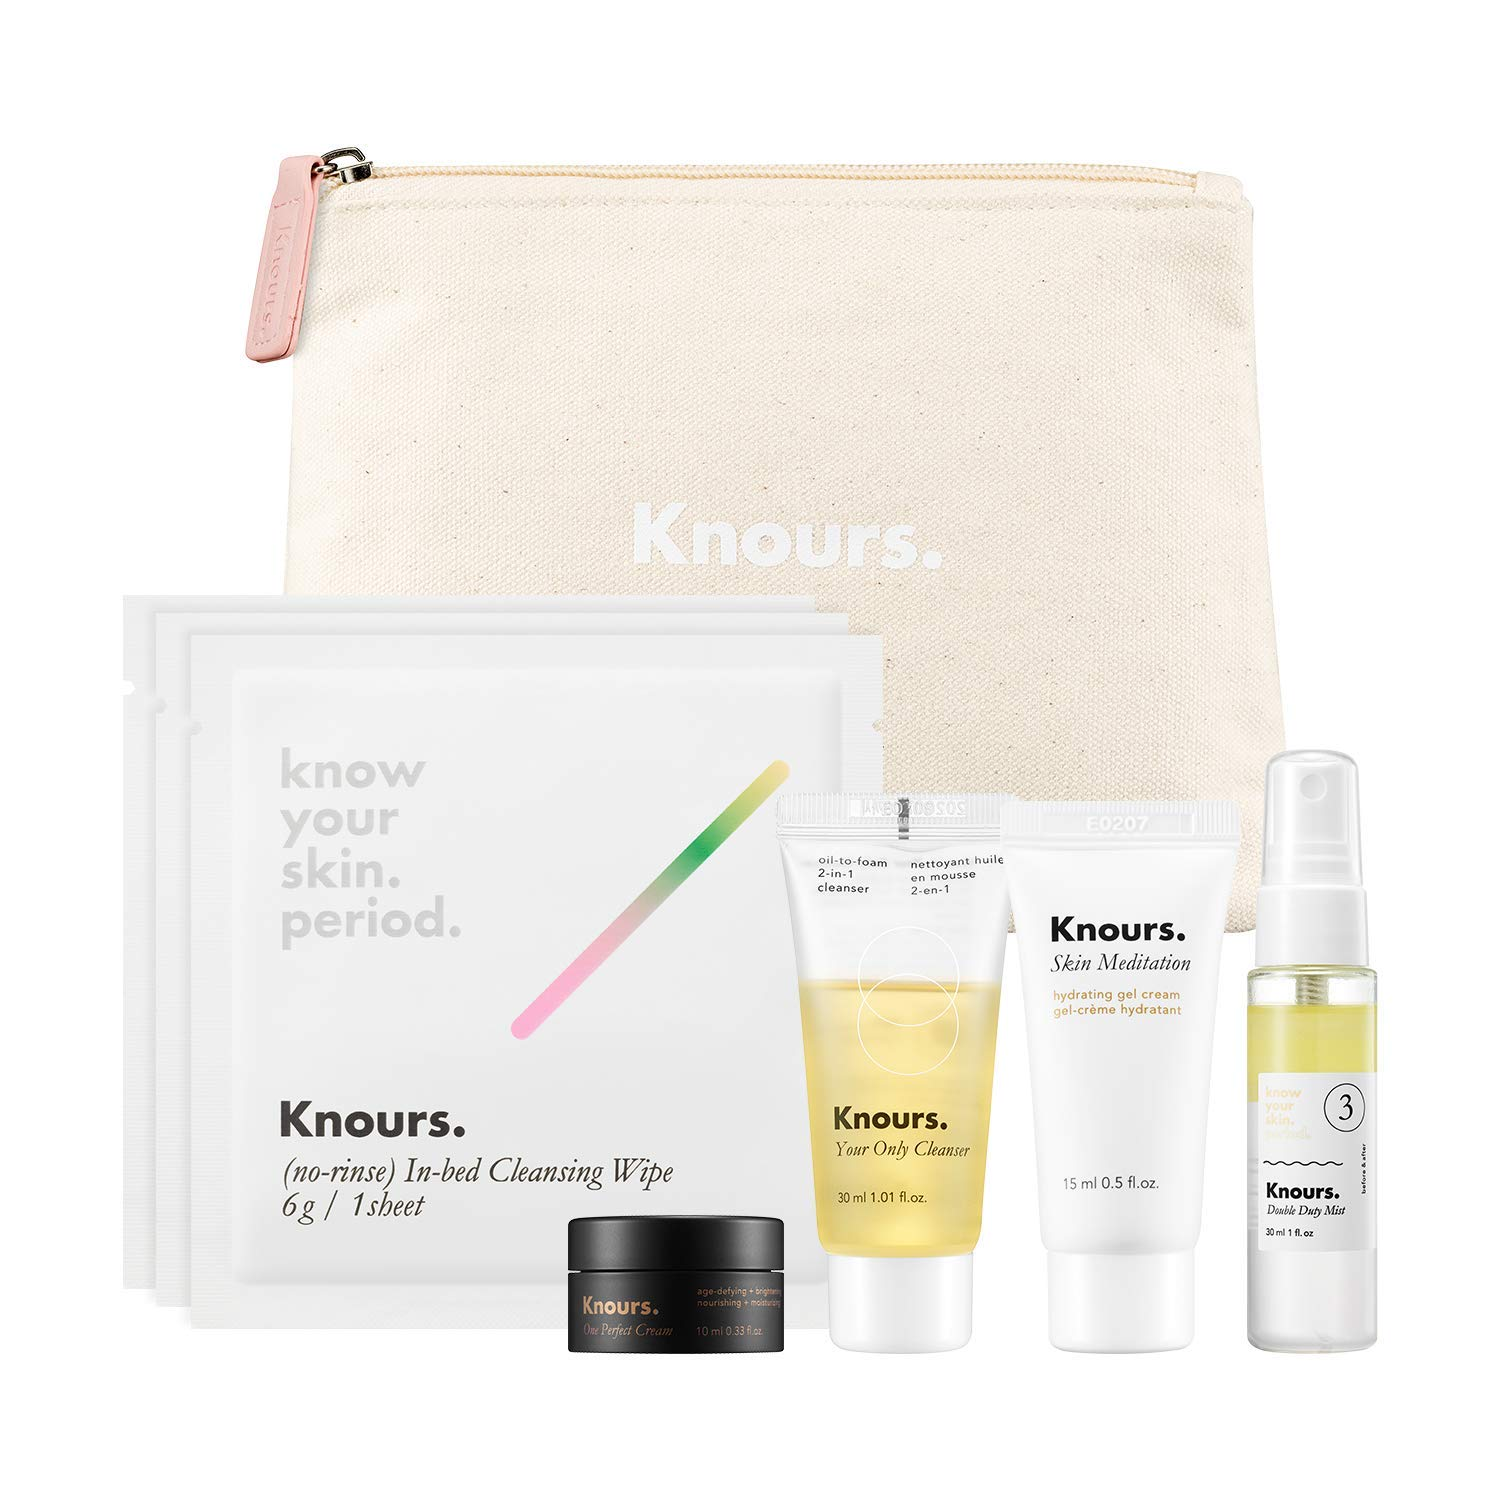 Knours. - Starter Kit | Daily Face Care Kit | Travel Size Products - Double Duty Mist, Your Only Cleanser, Skin Meditation Gel Cream, One Perfect Cream and In-bed Cleansing Wipes